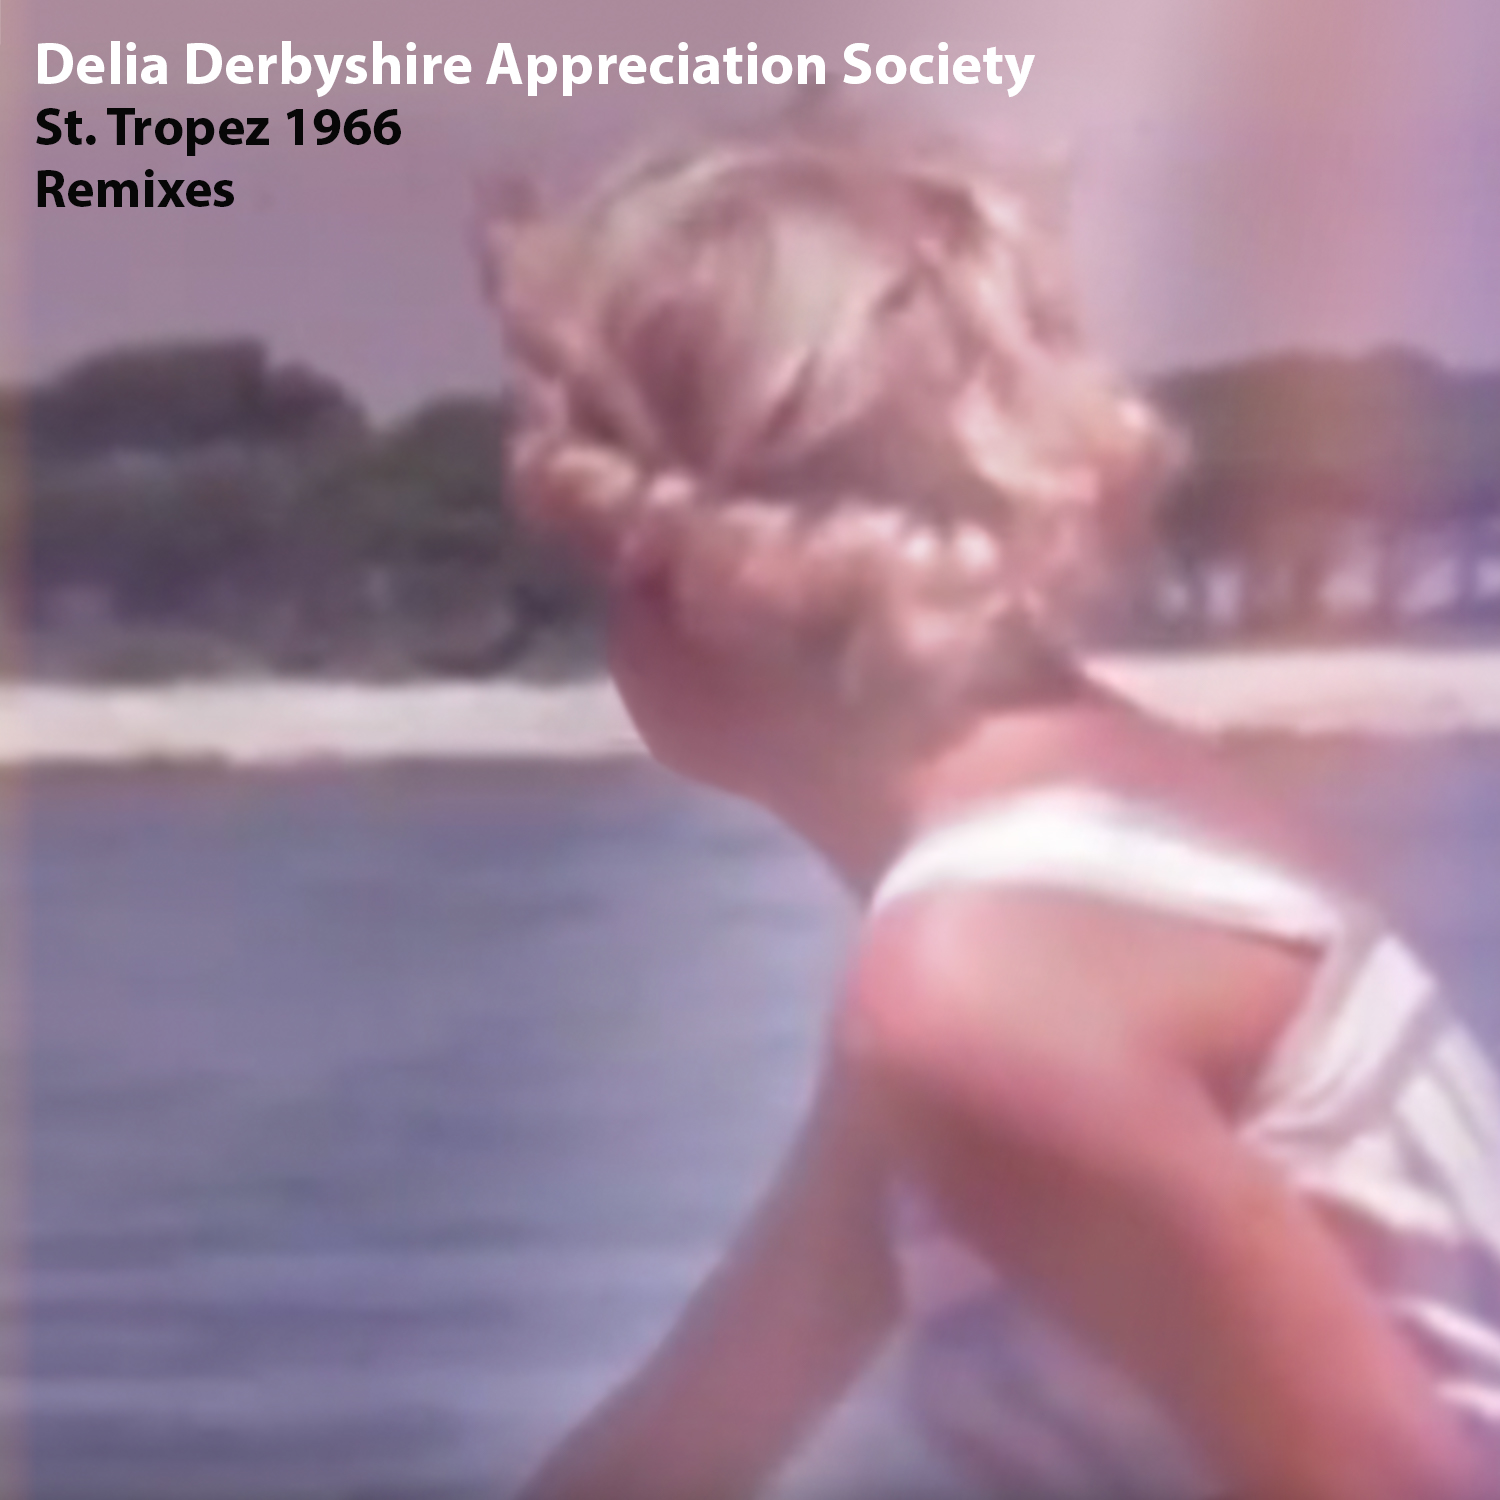 Delia Derbyshire Appreciation Society St Tropez 1966 Remixes